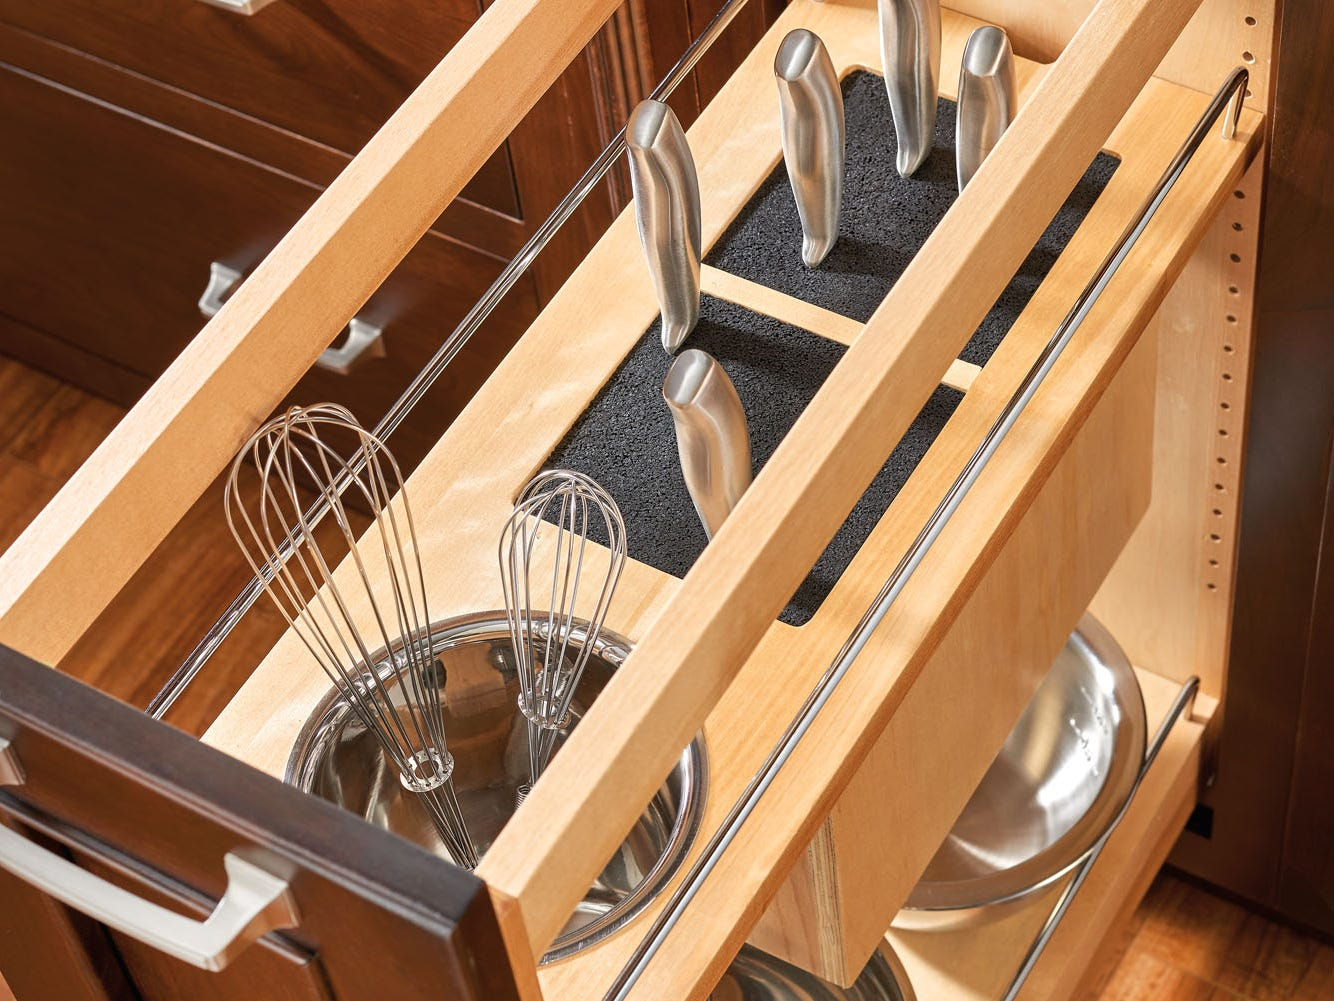 A two-tier pull-out offers knife and utensil storage on top.